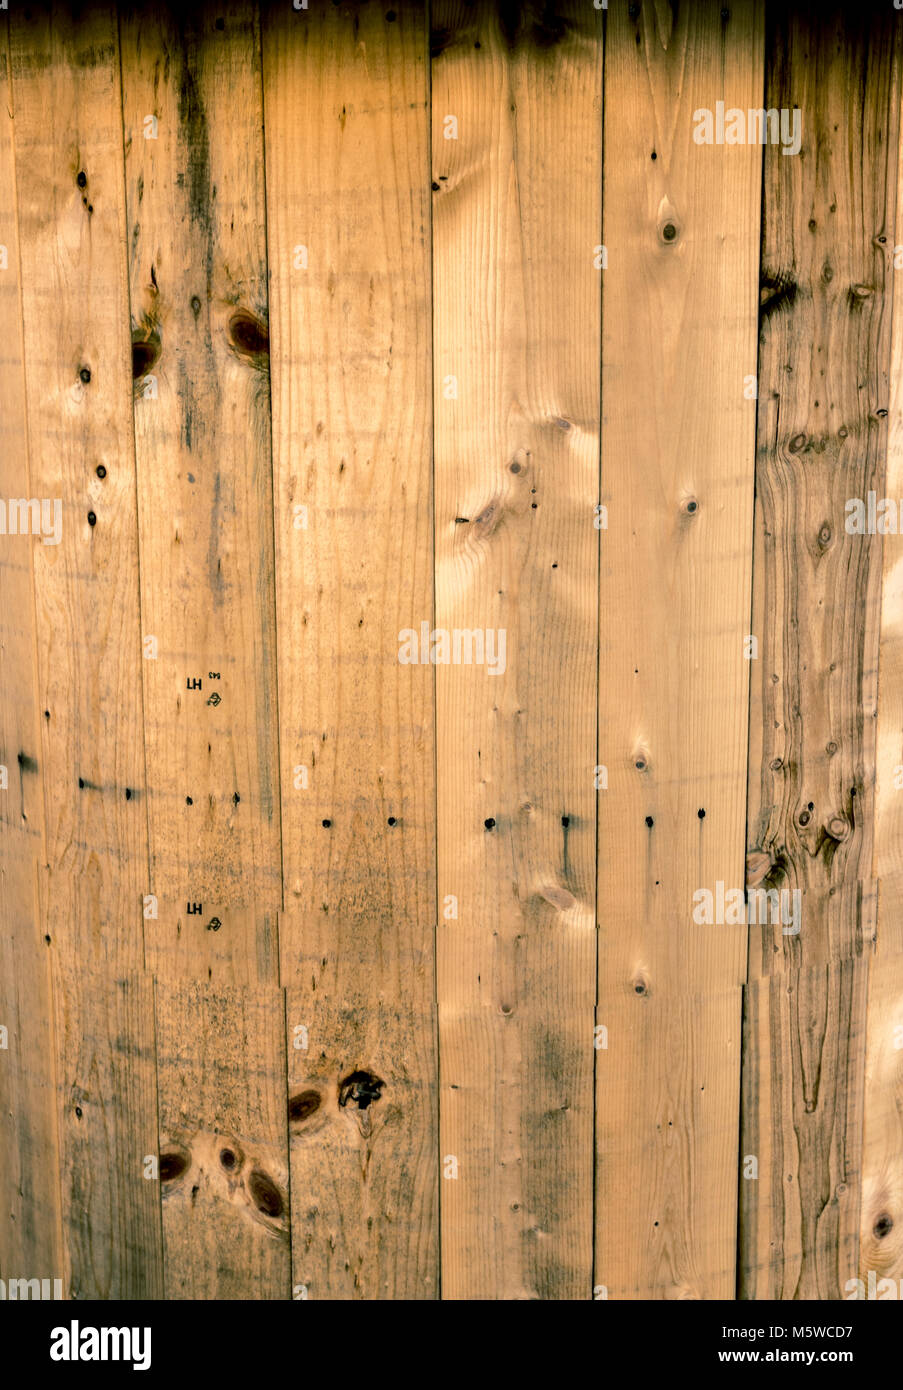 Wooden wire spool spindle core close up background Stock Photo ...